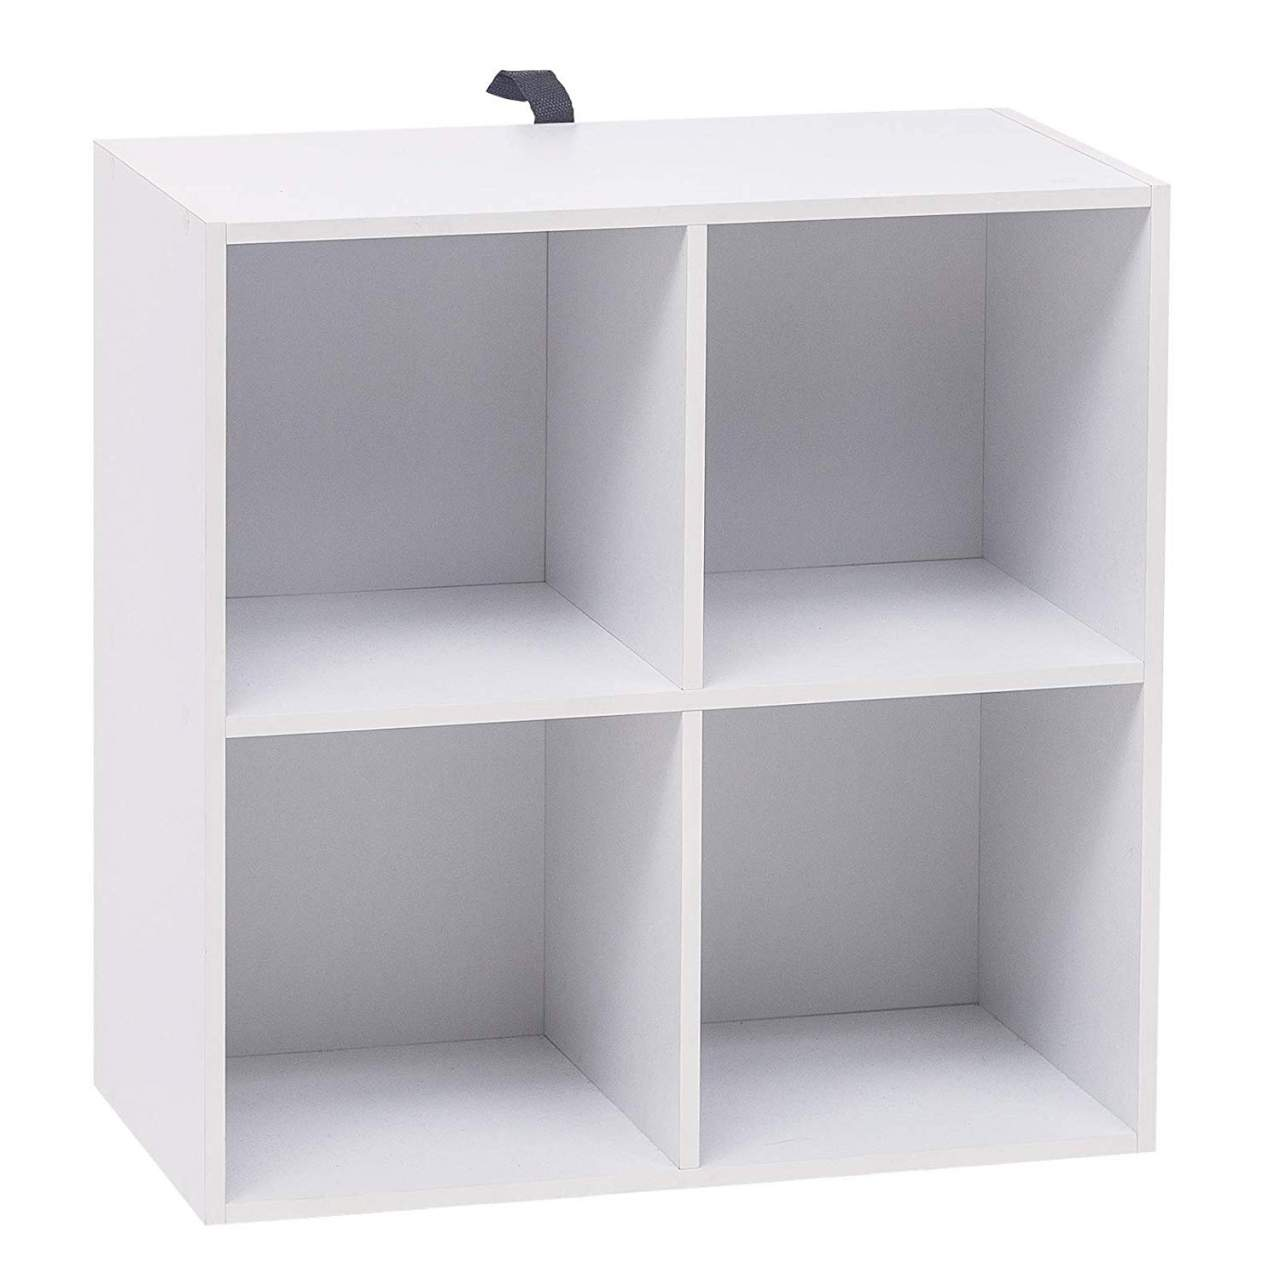 2 tier wooden bookcase 4 cubes white rack for office